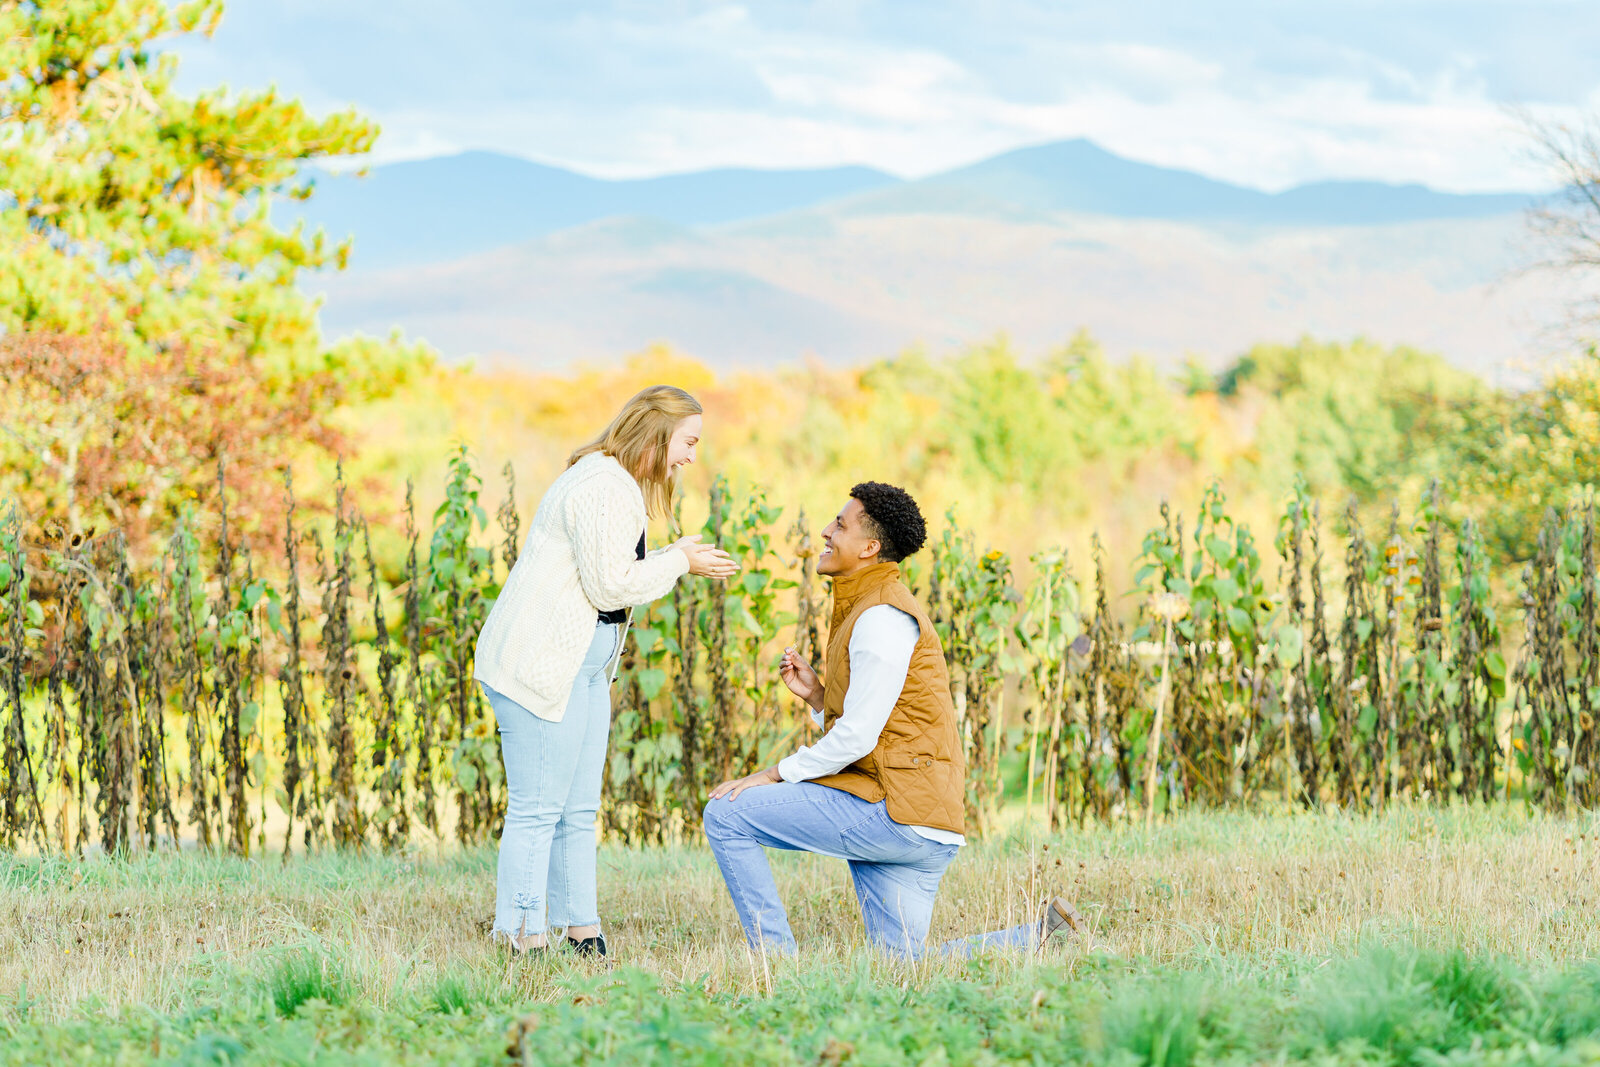 Man down on one knee proposing with New Hampshire mountains in background